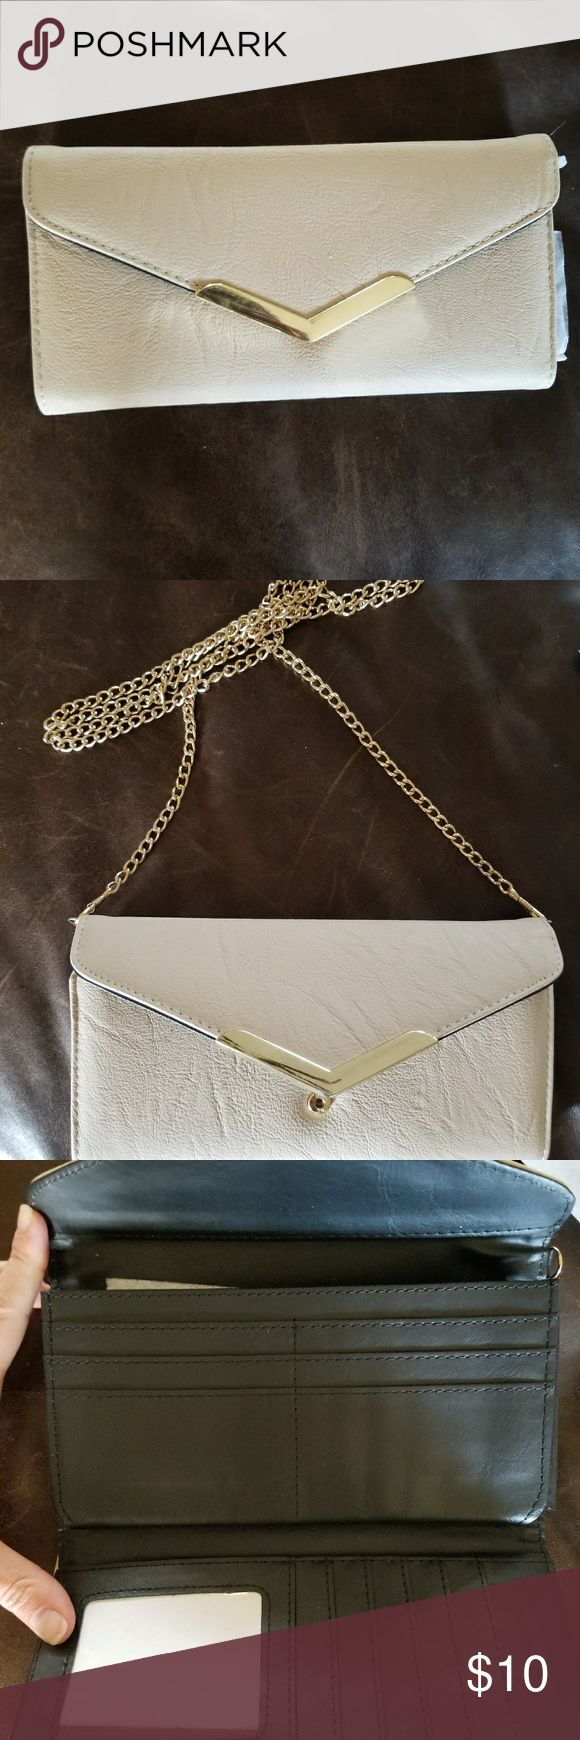 Cream clutch with gold chain Cream clutch with gold chain. It was a gift and I can't find a brand name on it. Bramd new. Never used. I removed the packing paper to take pictures. No tags included when purchased. unknown Bags Clutches & Wristlets